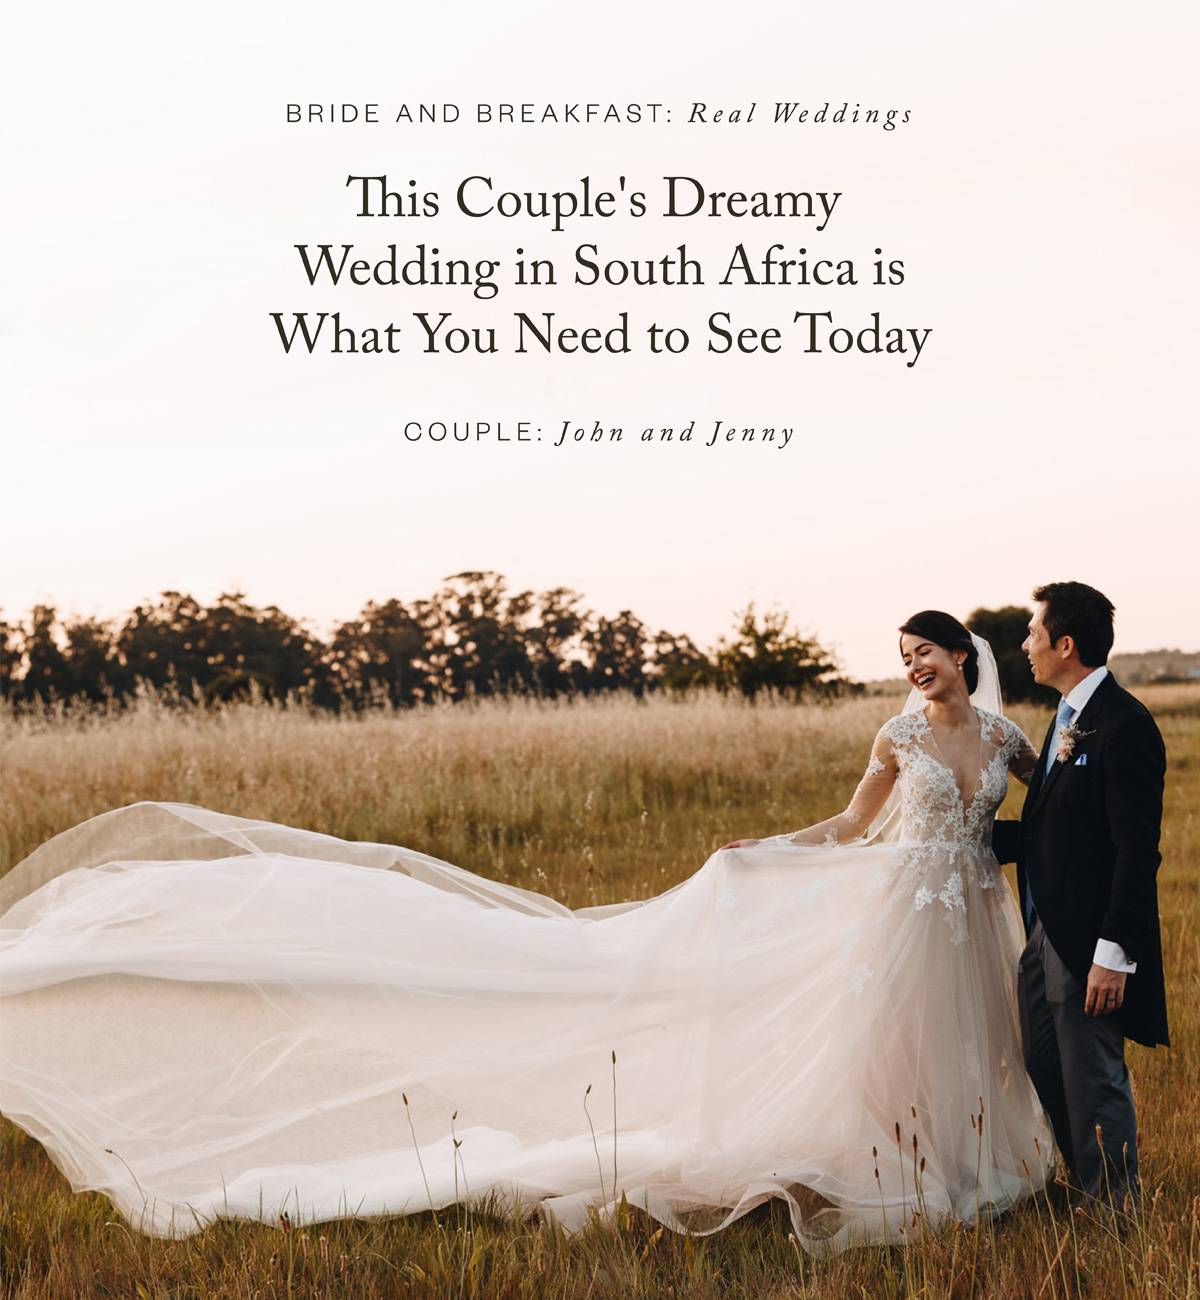 This Couple's Dreamy Garden Wedding in South Africa is What You Need to See Today